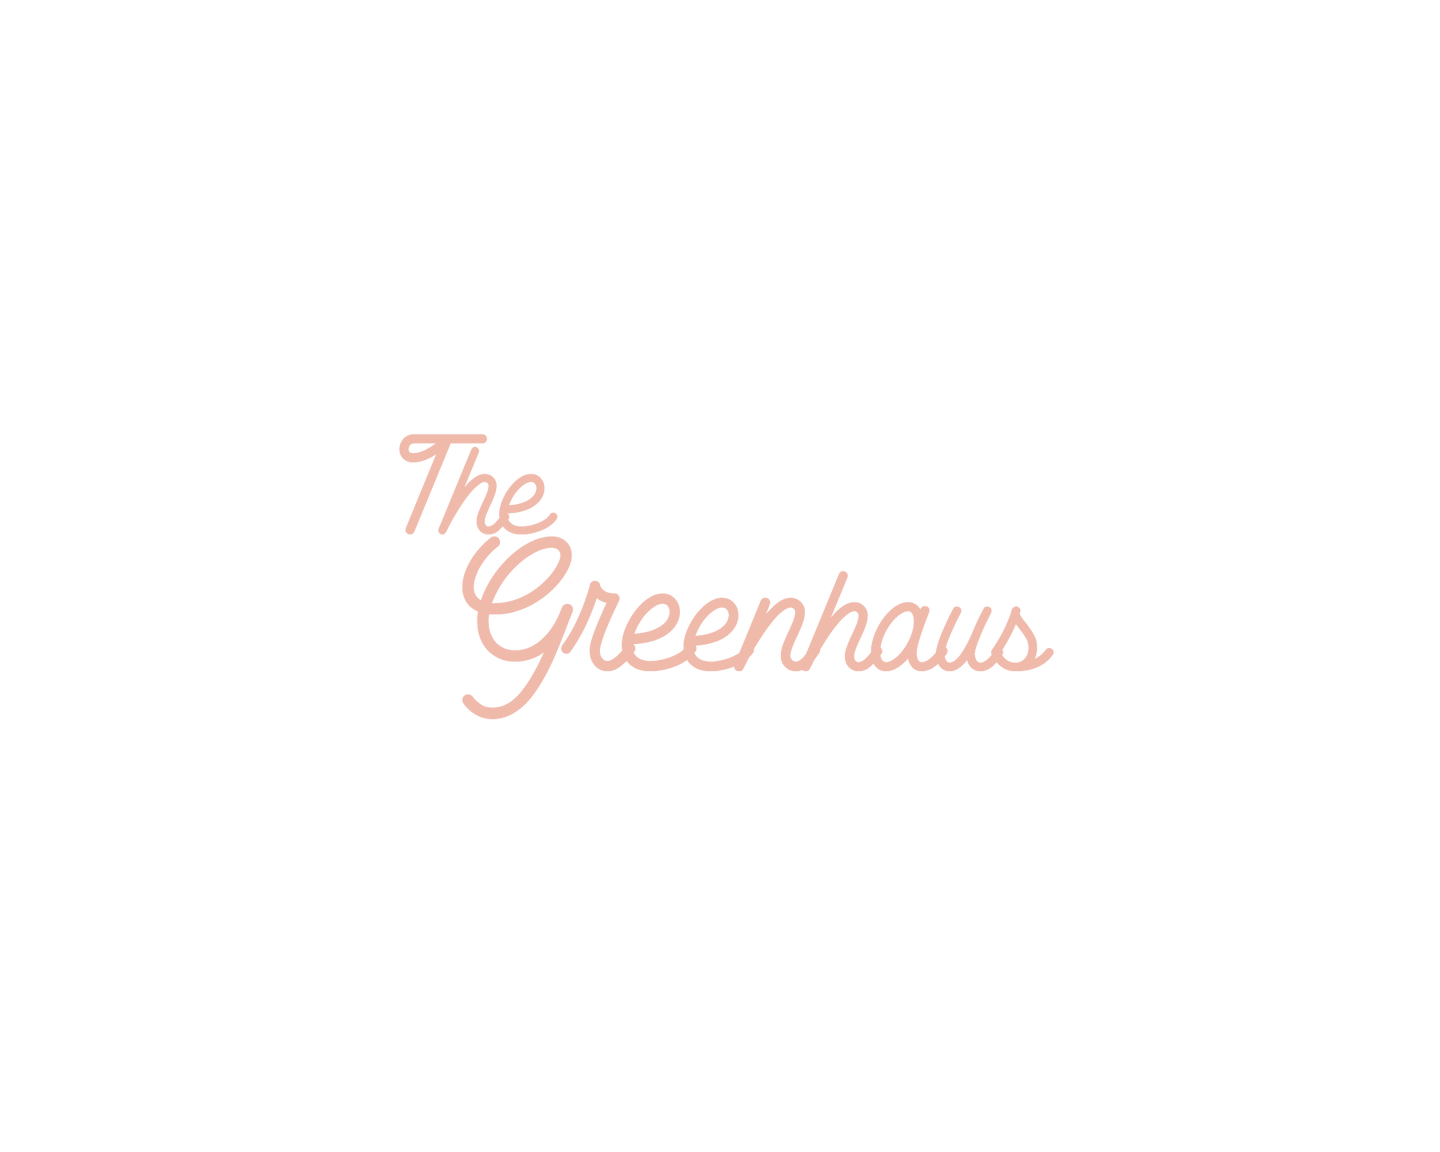 The Greenhaus